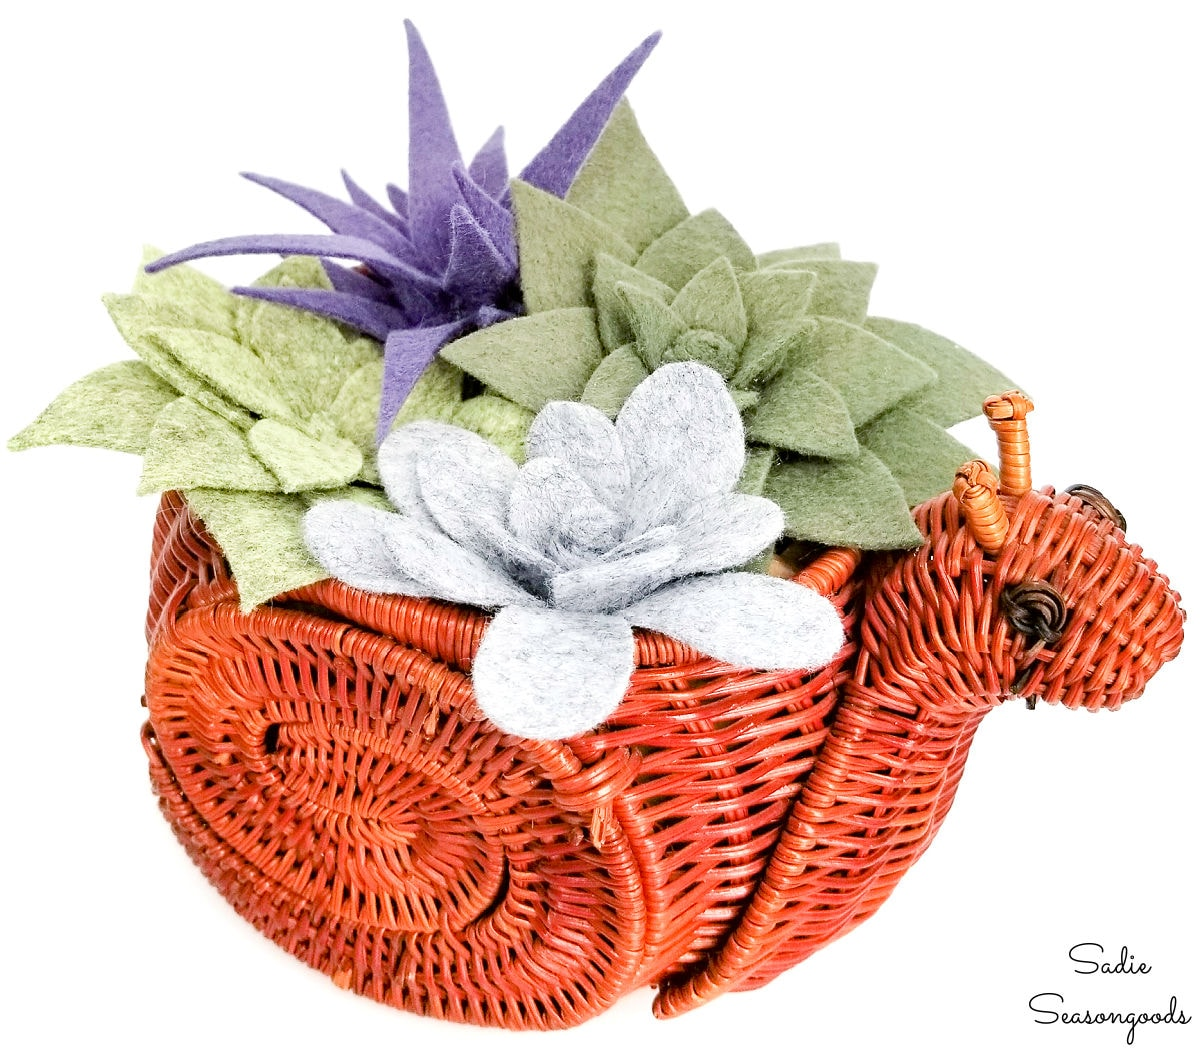 Felt succulents in a snail basket